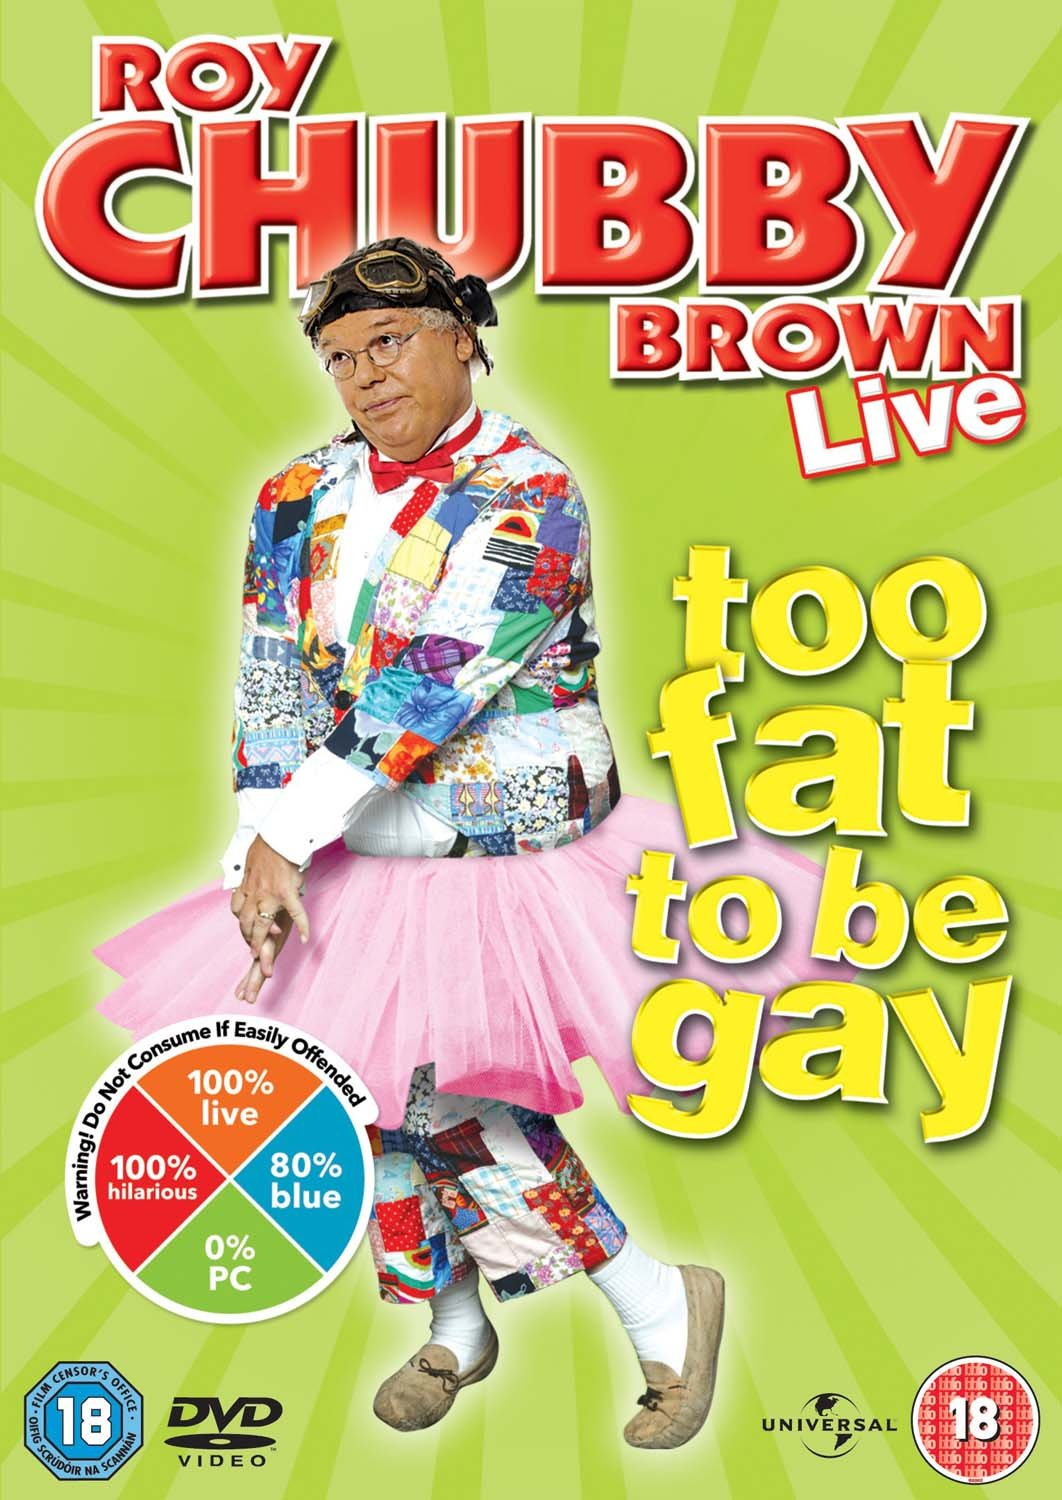 Roy Chubby Brown - Too Fat To Be Gay [DVD]: Amazon.co.uk: Roy 'Chubby' Brown:  DVD & Blu-ray